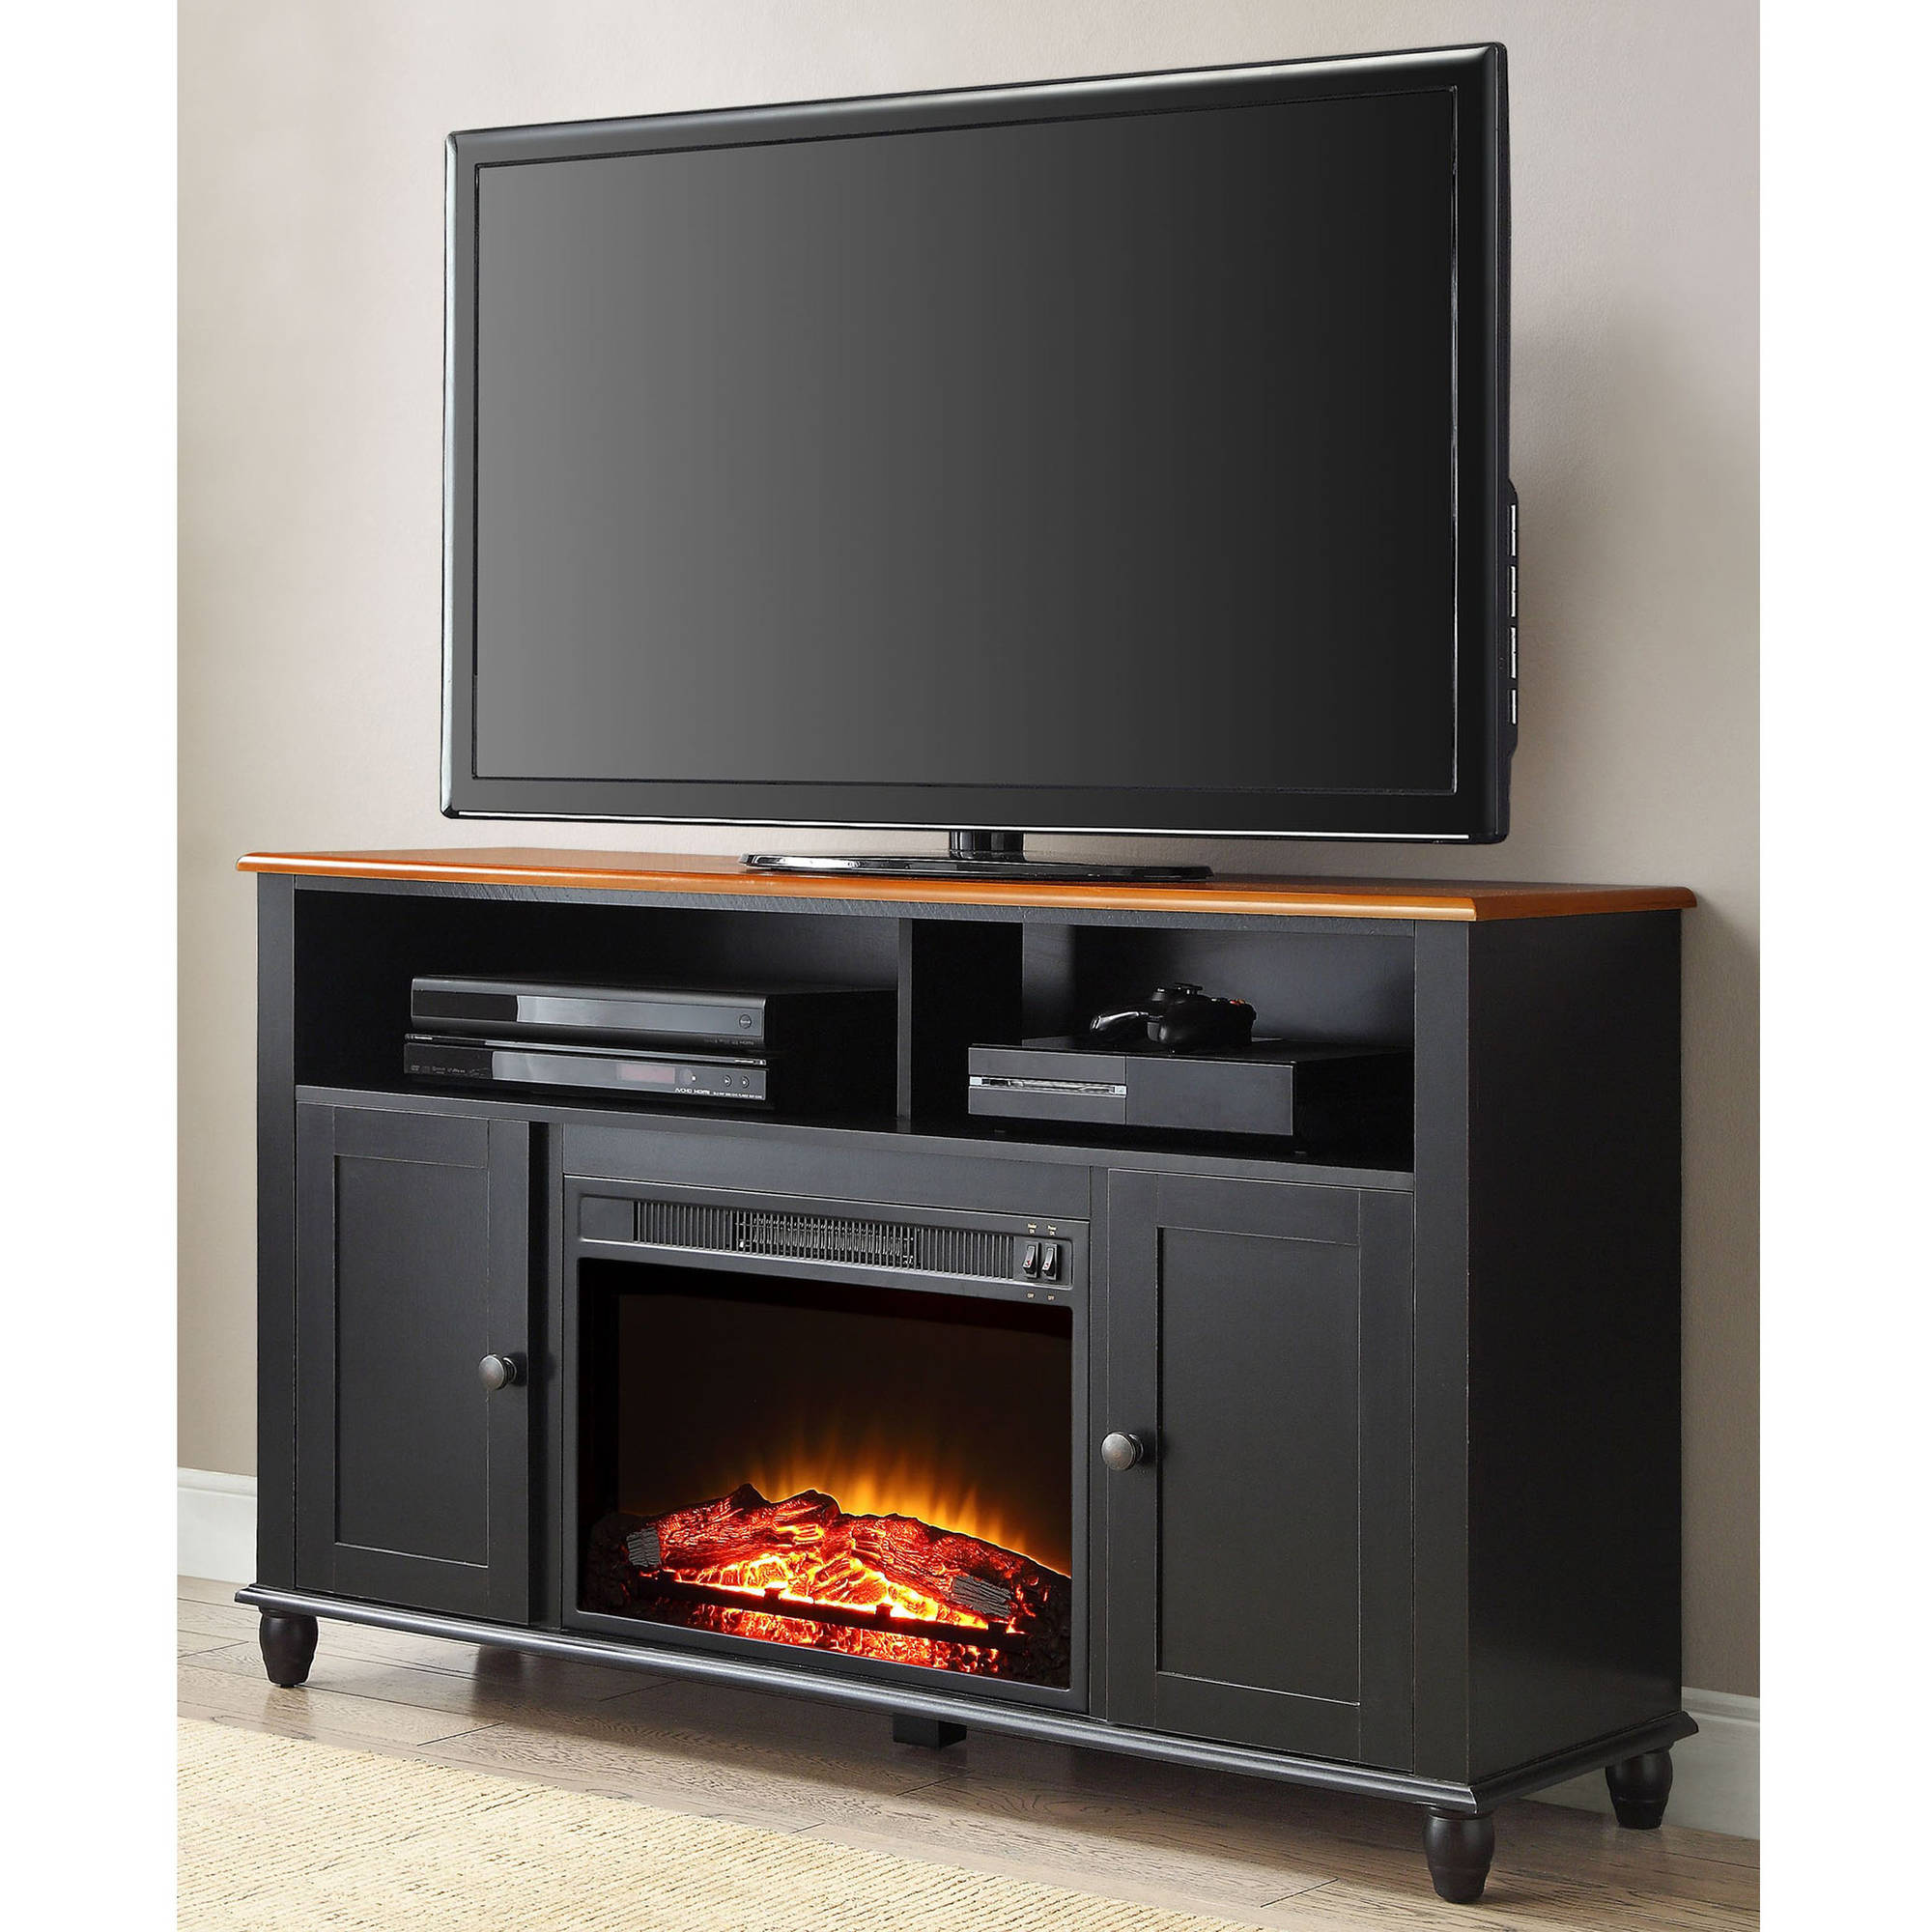 Buy Better Homes&gardens Media Fireplace at Walmart.com